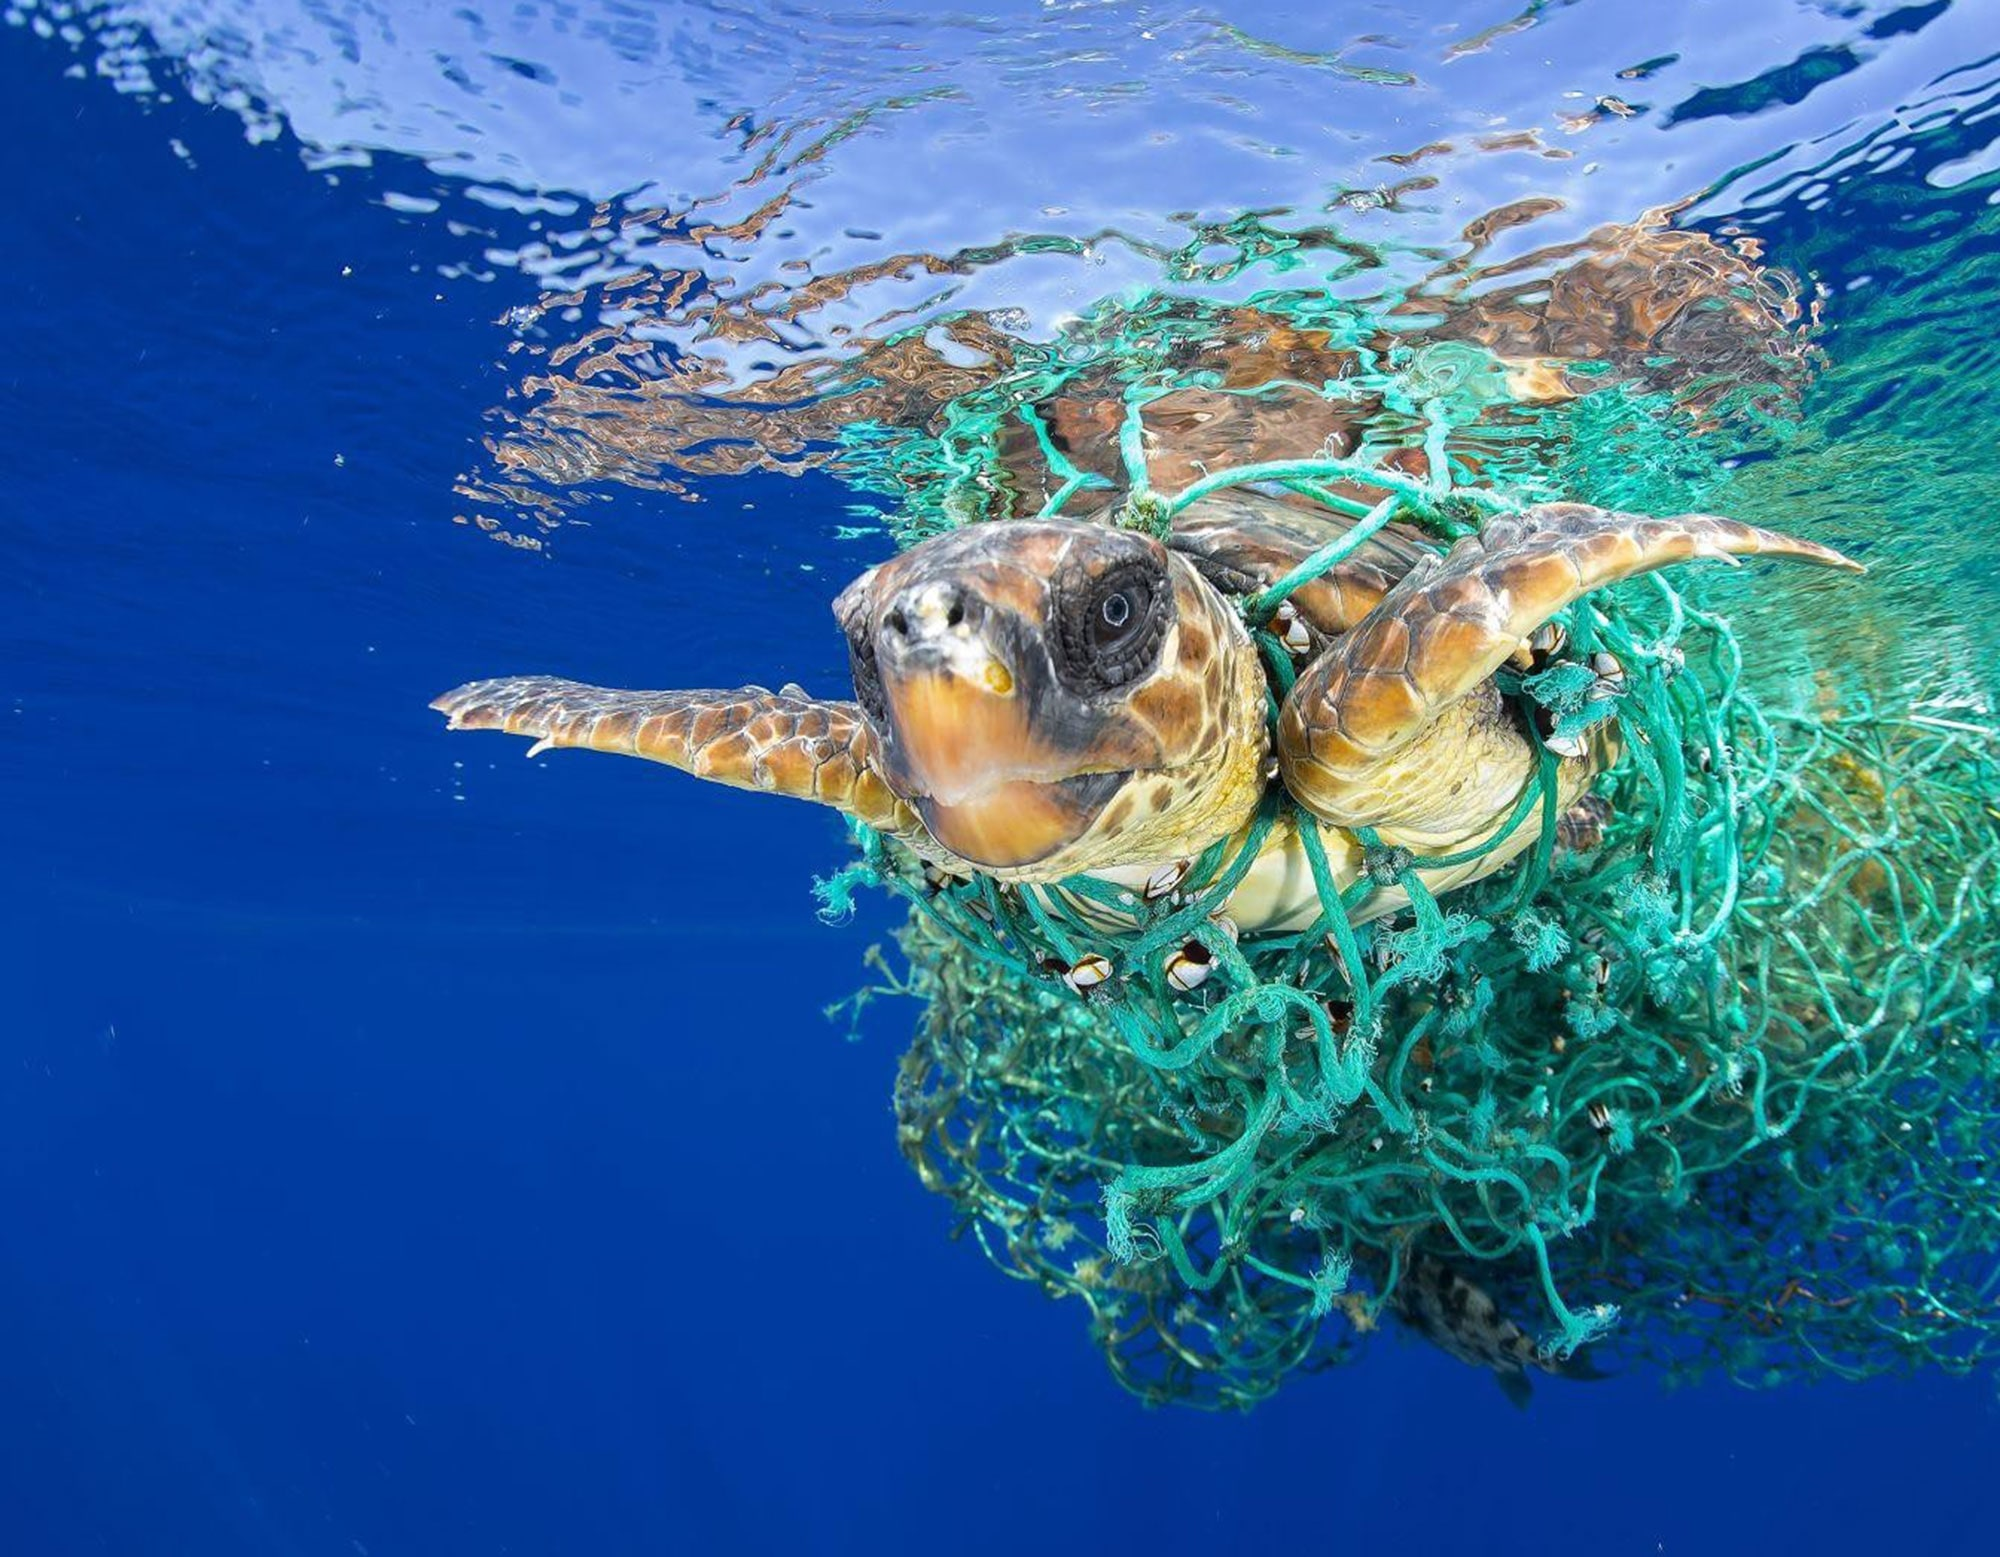 Save the turtles with Eco-friendly yoga wear made from recycled plastic bottles